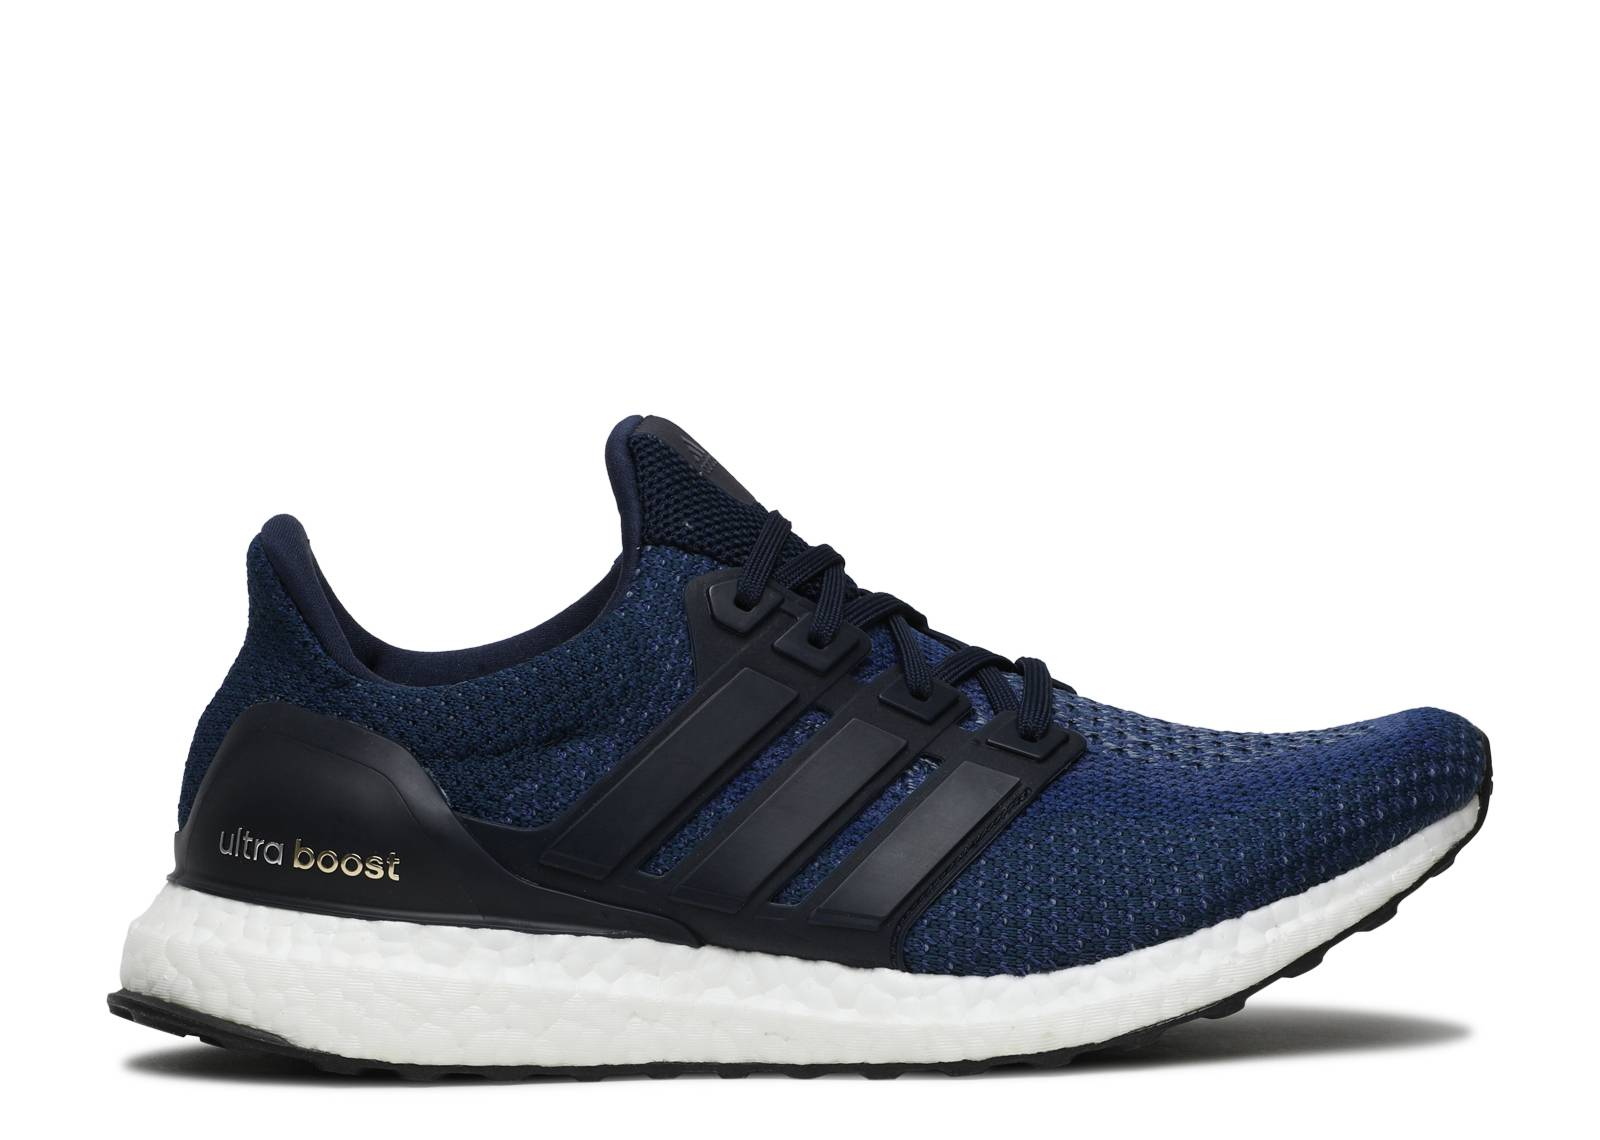 adidas powerlift 2.0 size guide